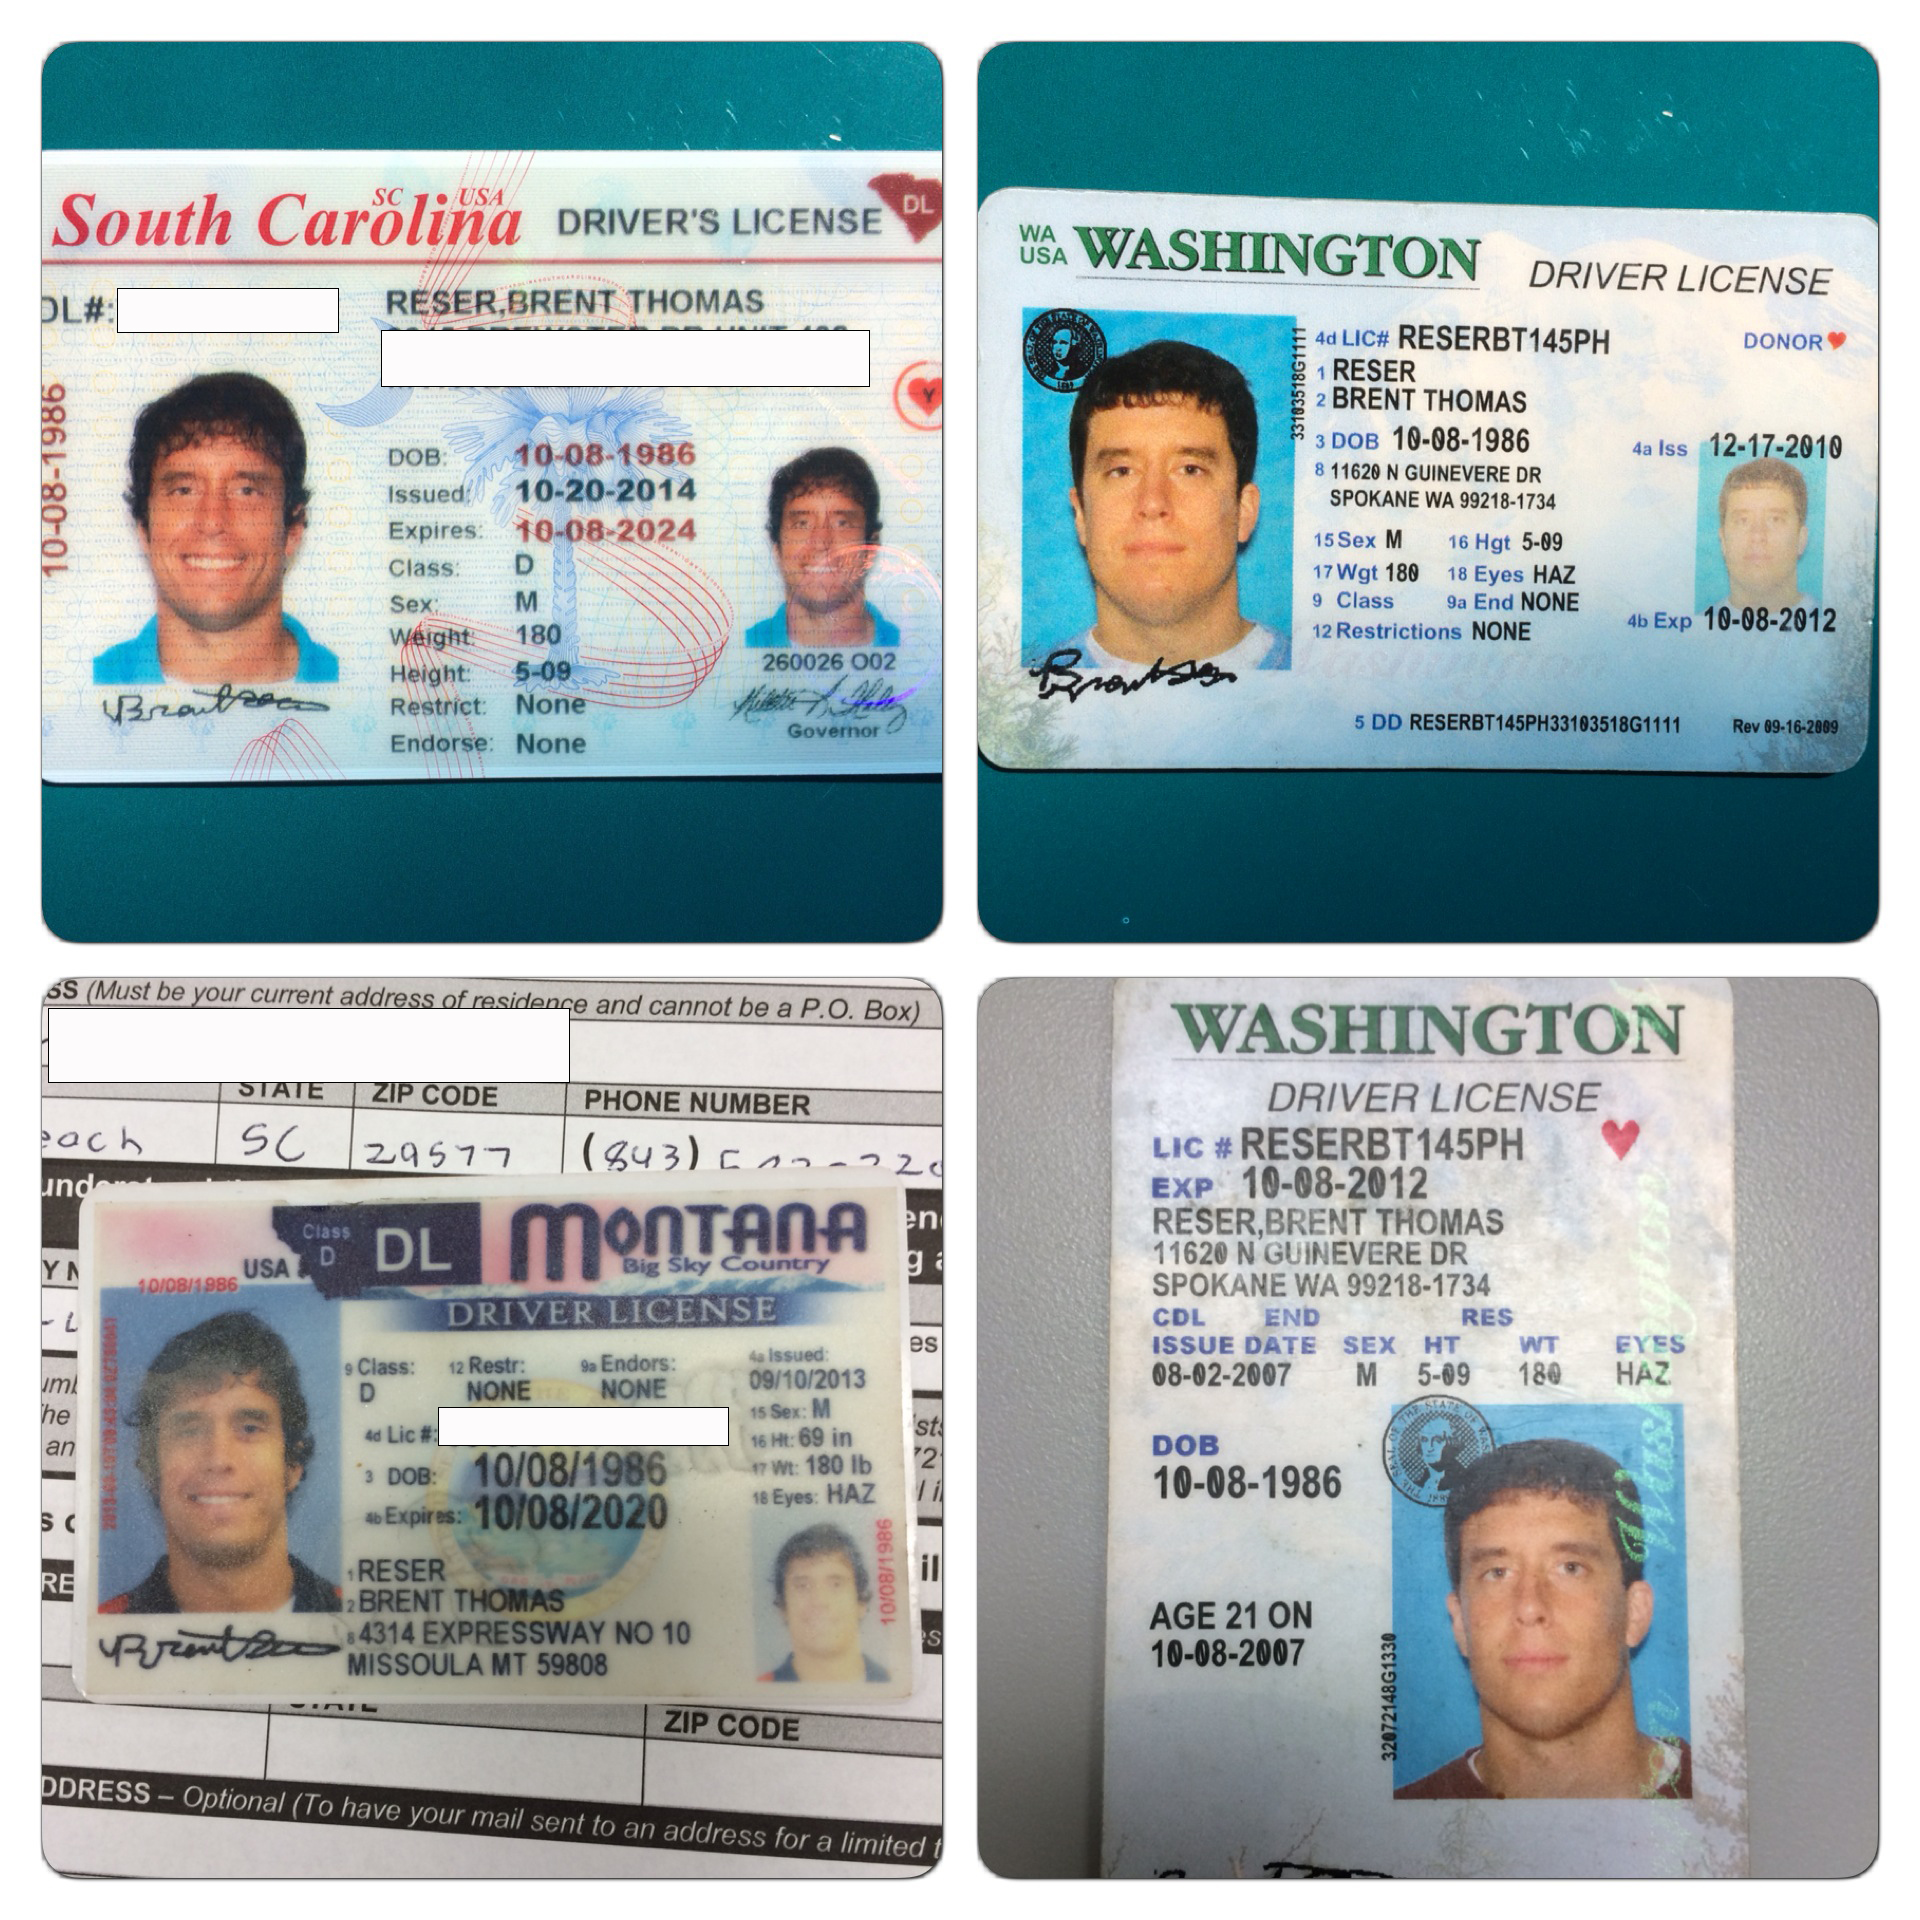 For your viewing pleasure, here are some of my past licenses.